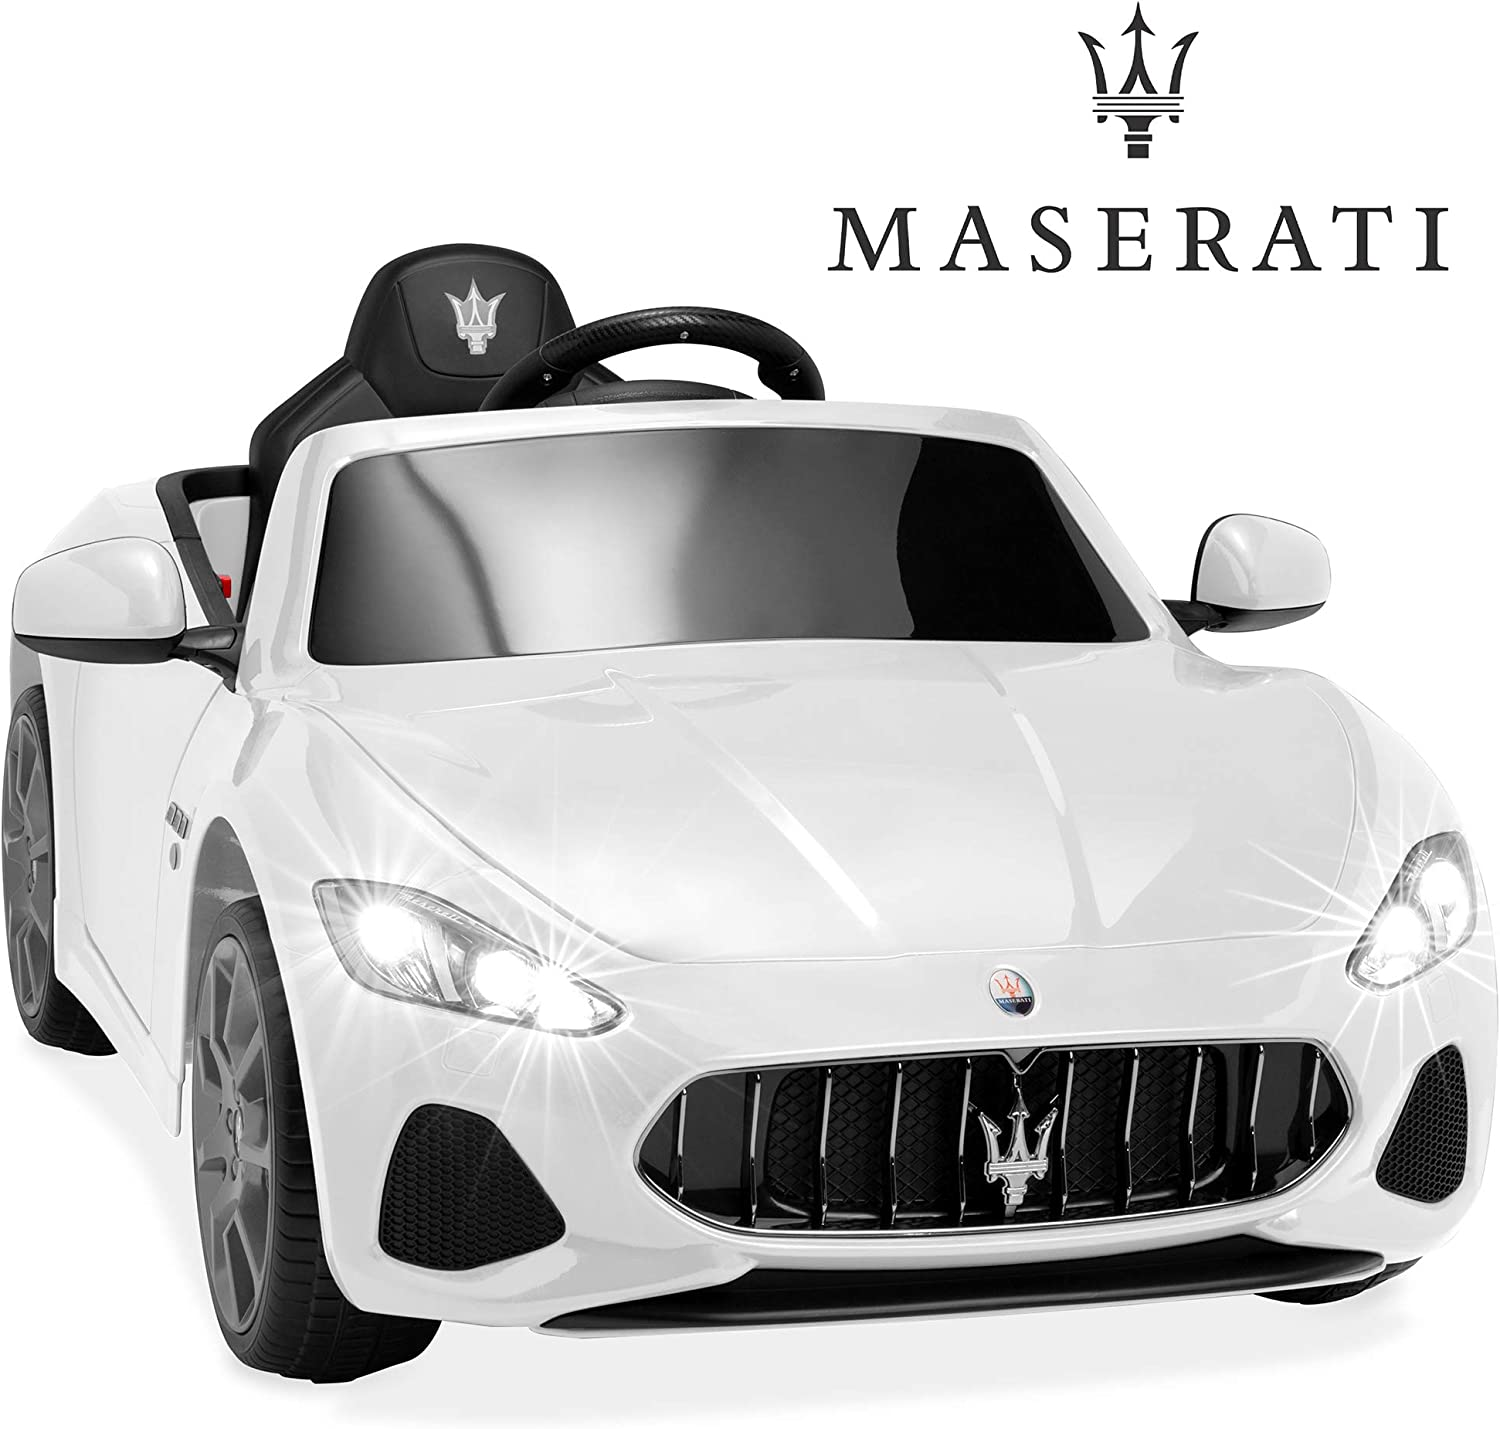 Best Choice Products Kids 12V Licensed Maserati GranCabrio Ride On Sports Car w/Remote Control, Sounds, AUX Port, LED Lights - White